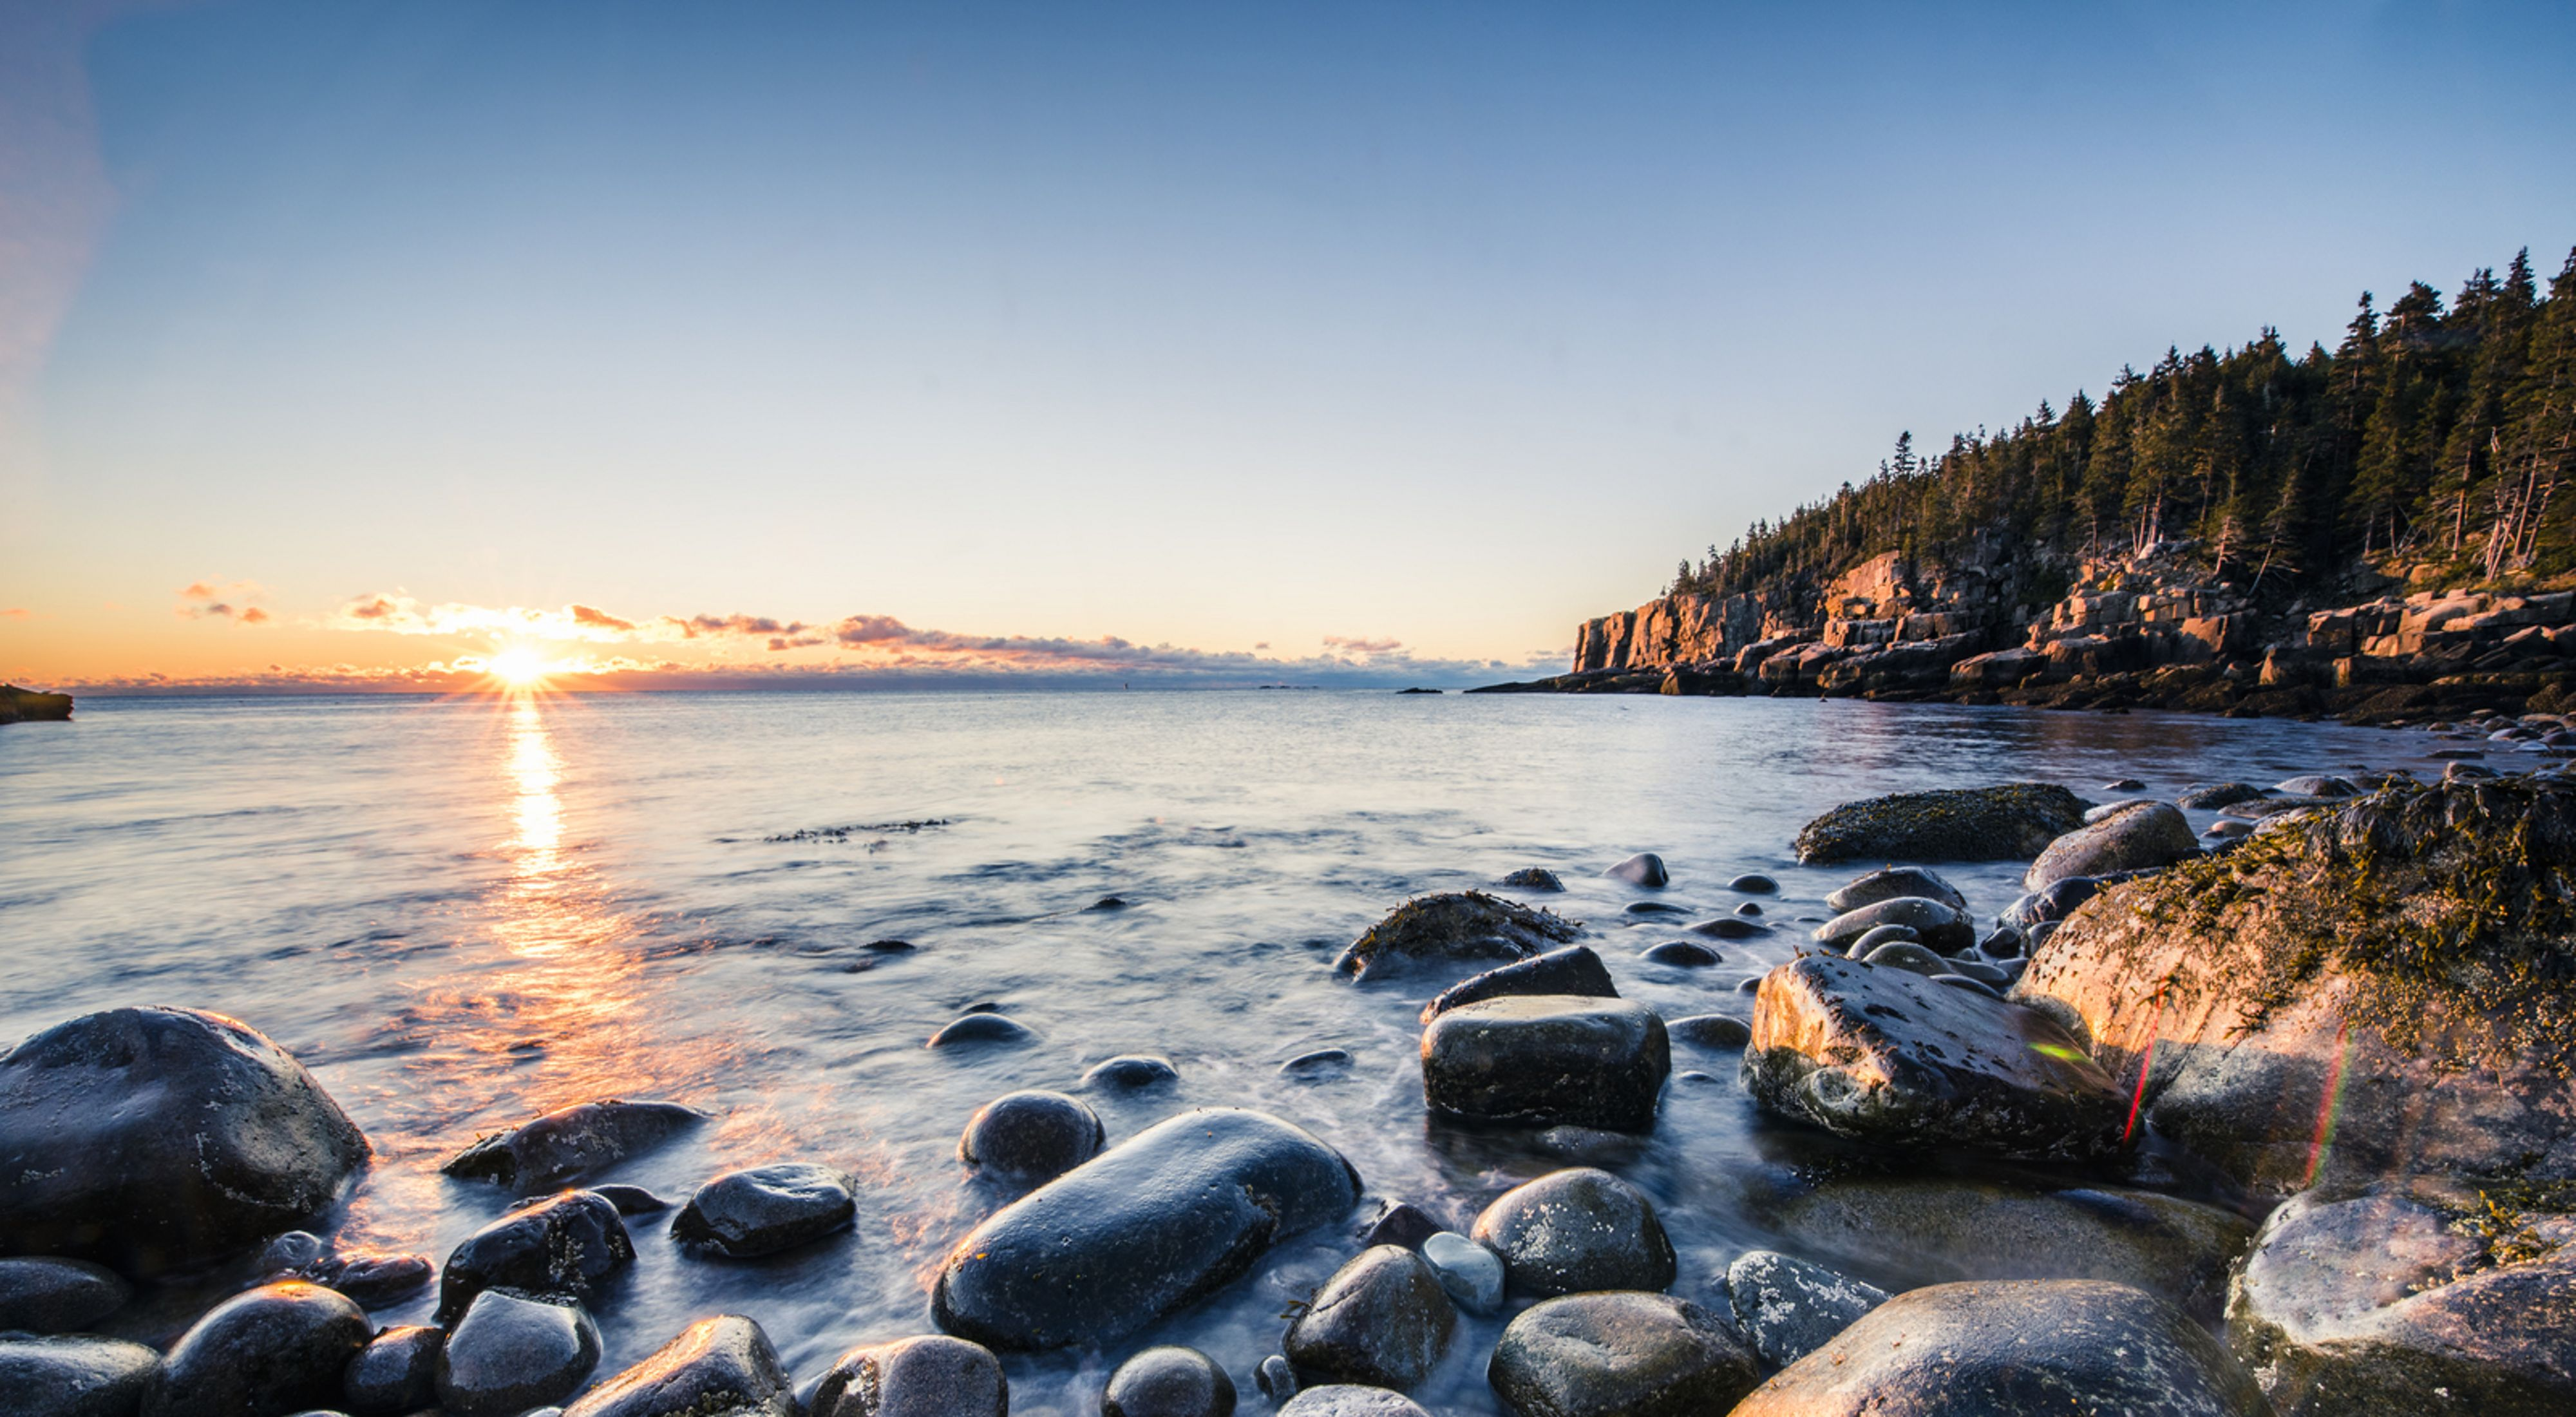 Sunrise over the shore of Maine's Acadia National Park